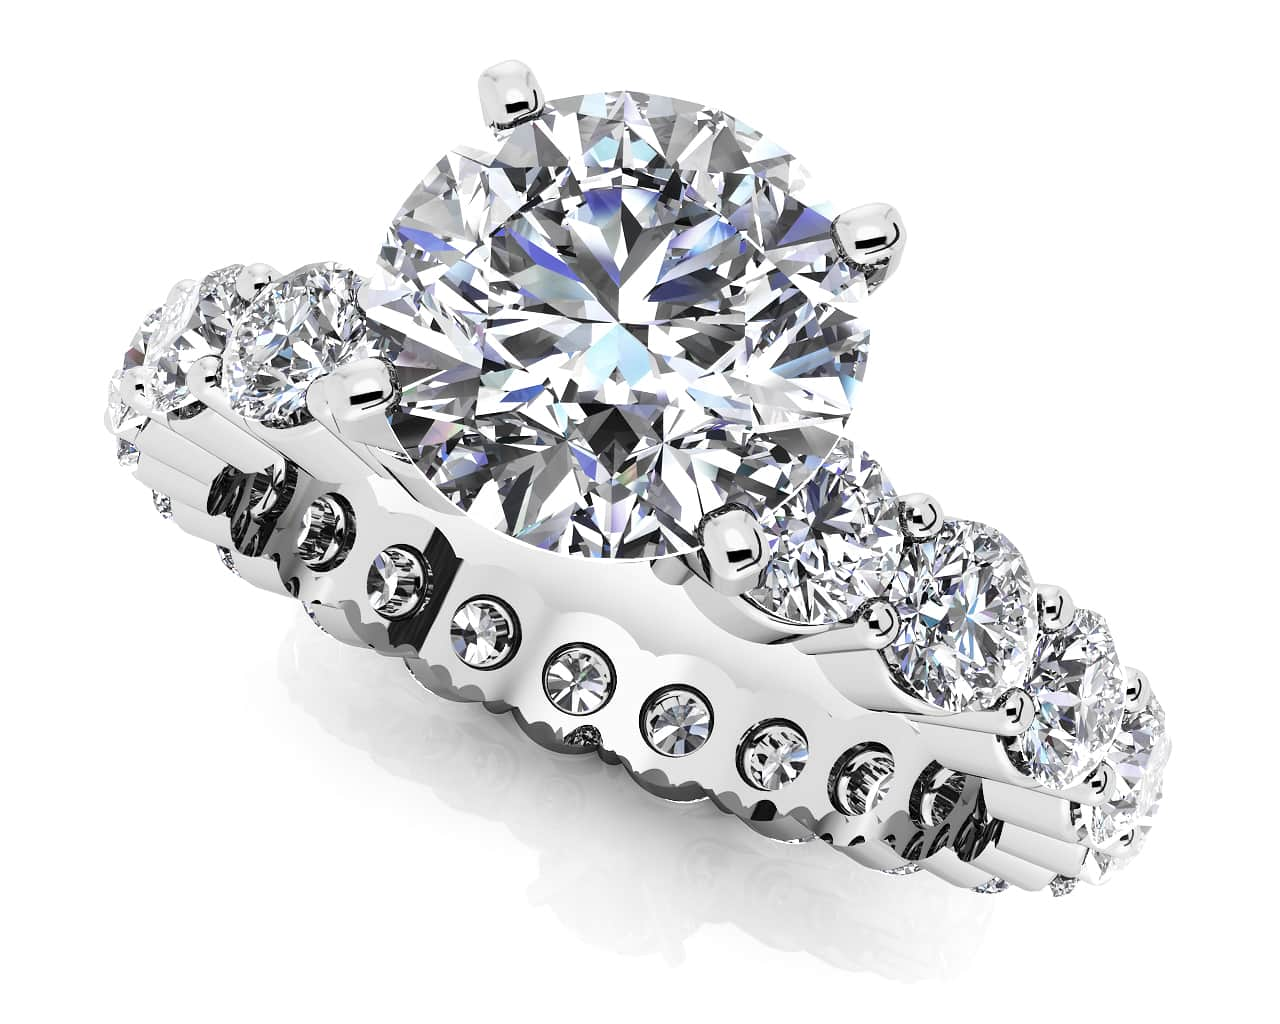 rings round diamong from vert beloved engagement d diamond hearts stewart fire ring cut wedding soli weddings martha on